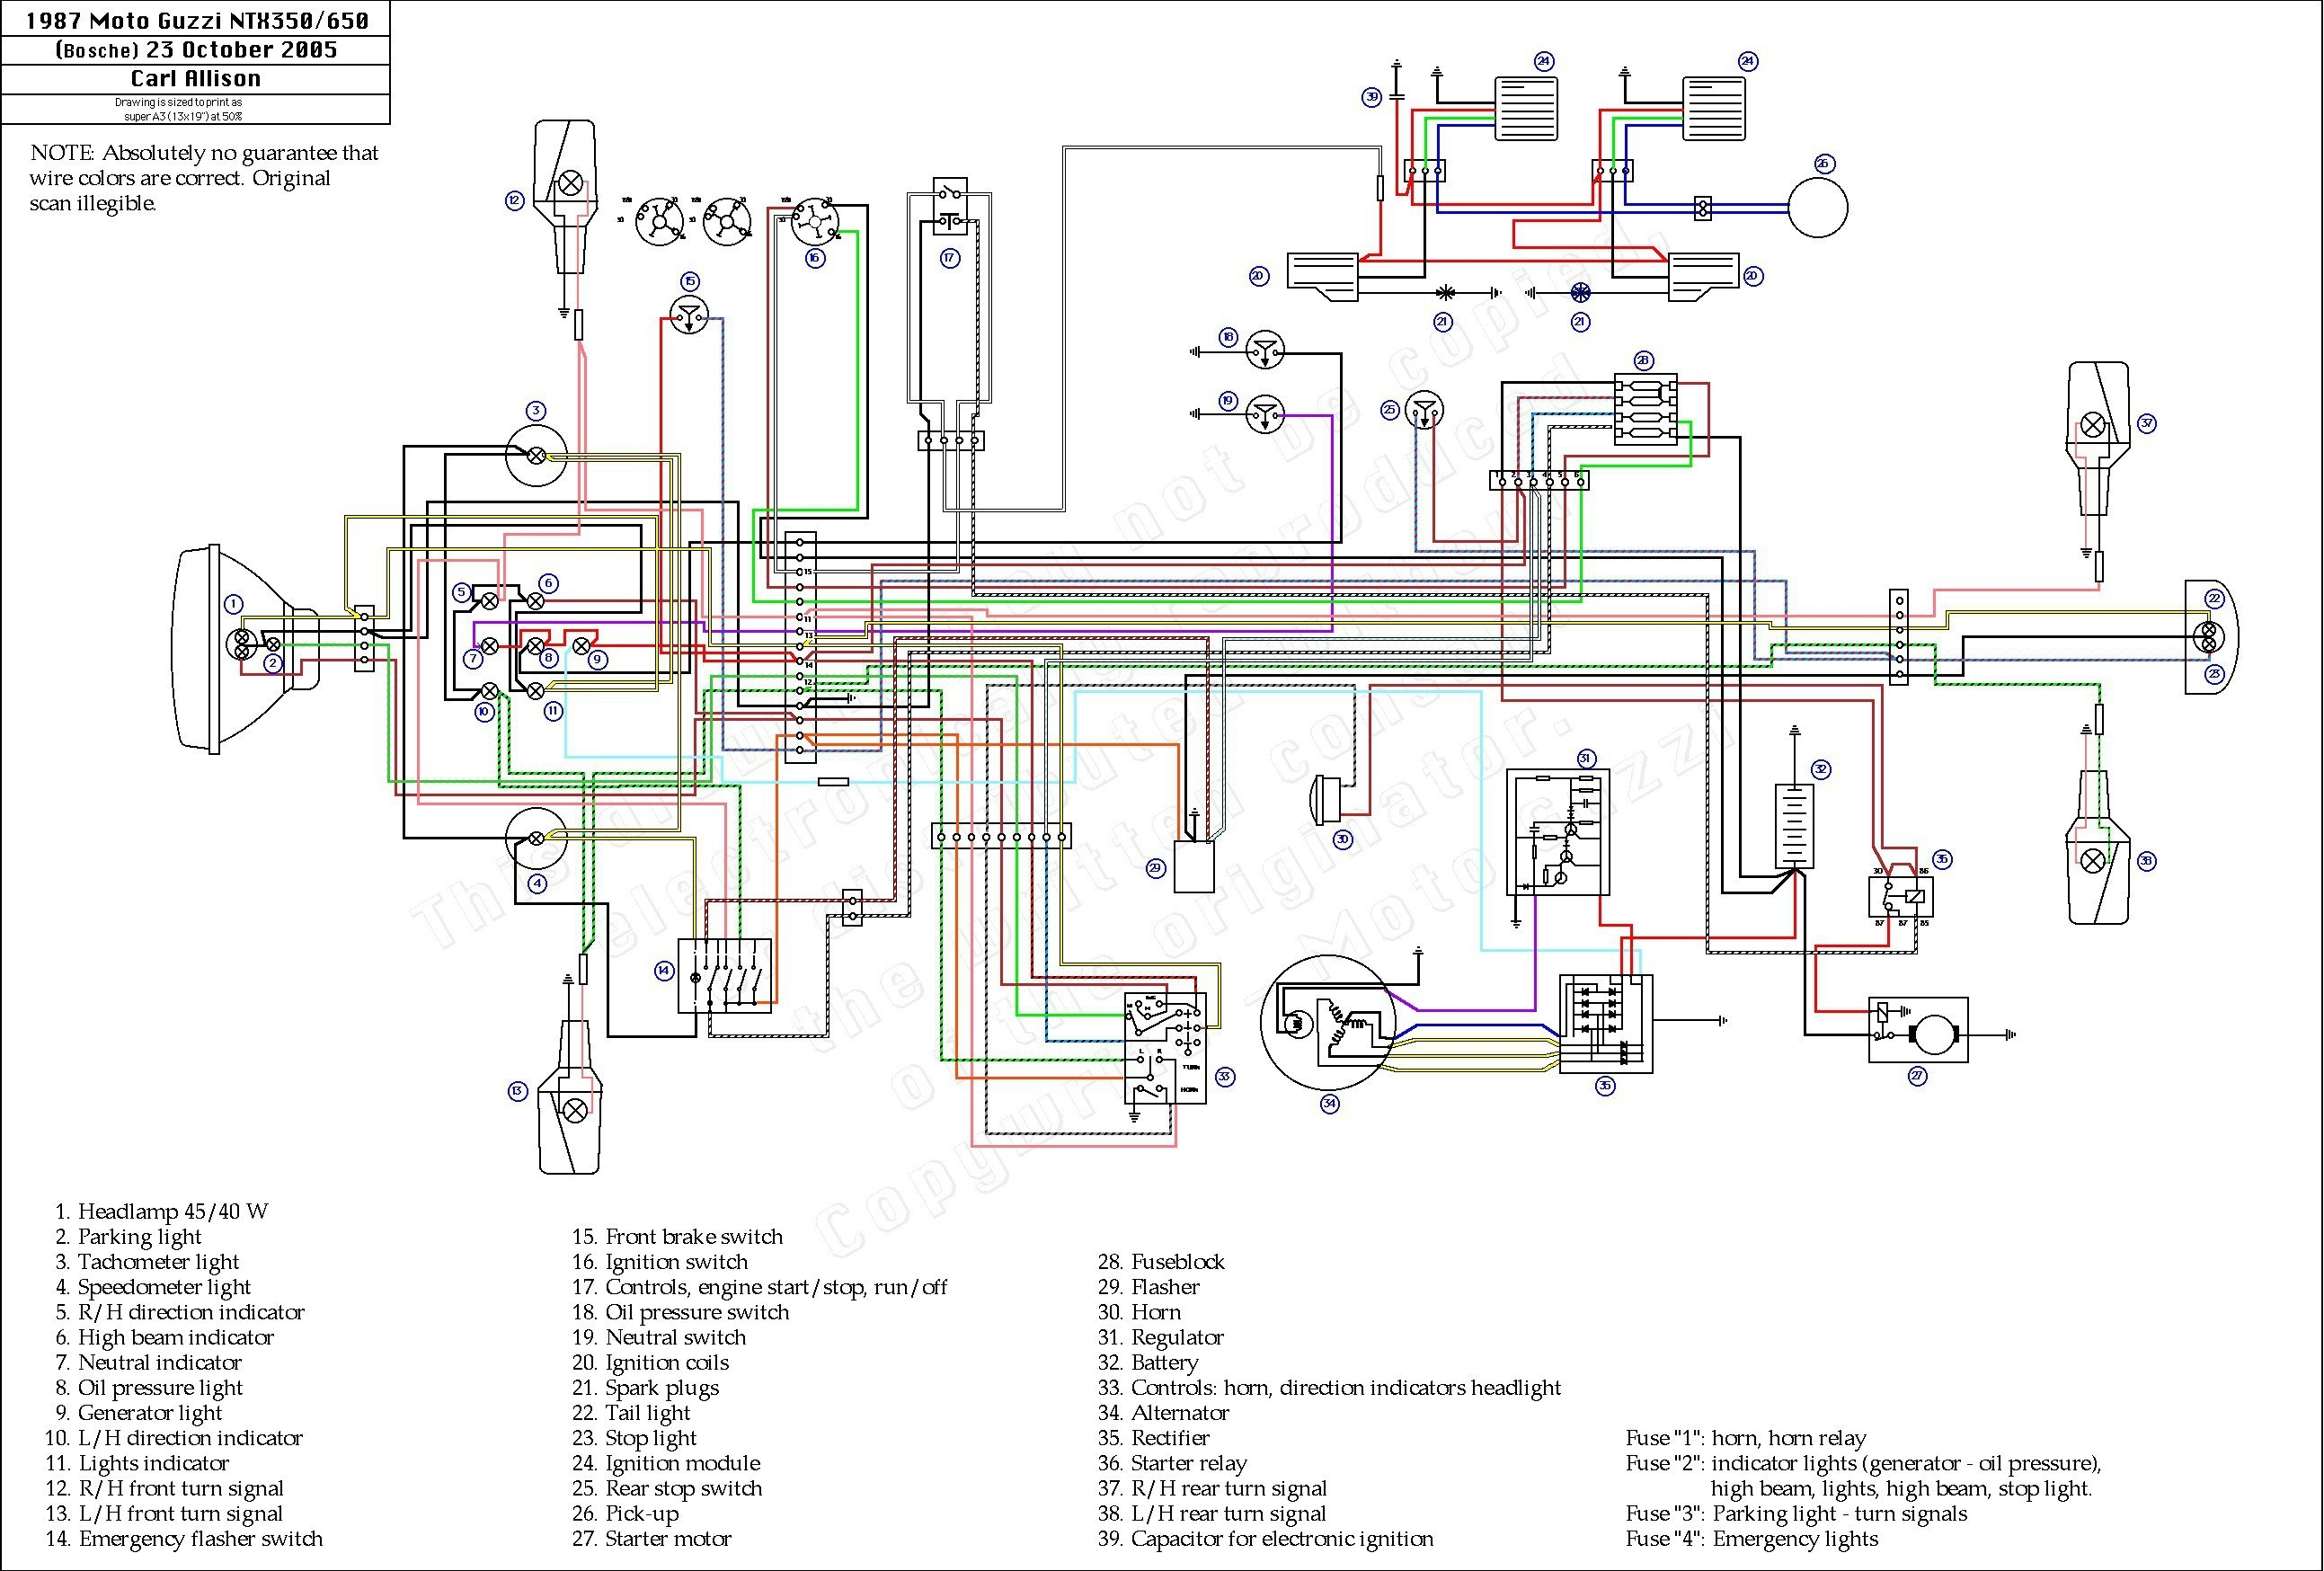 Chinese Atv Starter Solenoid Wiring Diagram - Wiring Diagram